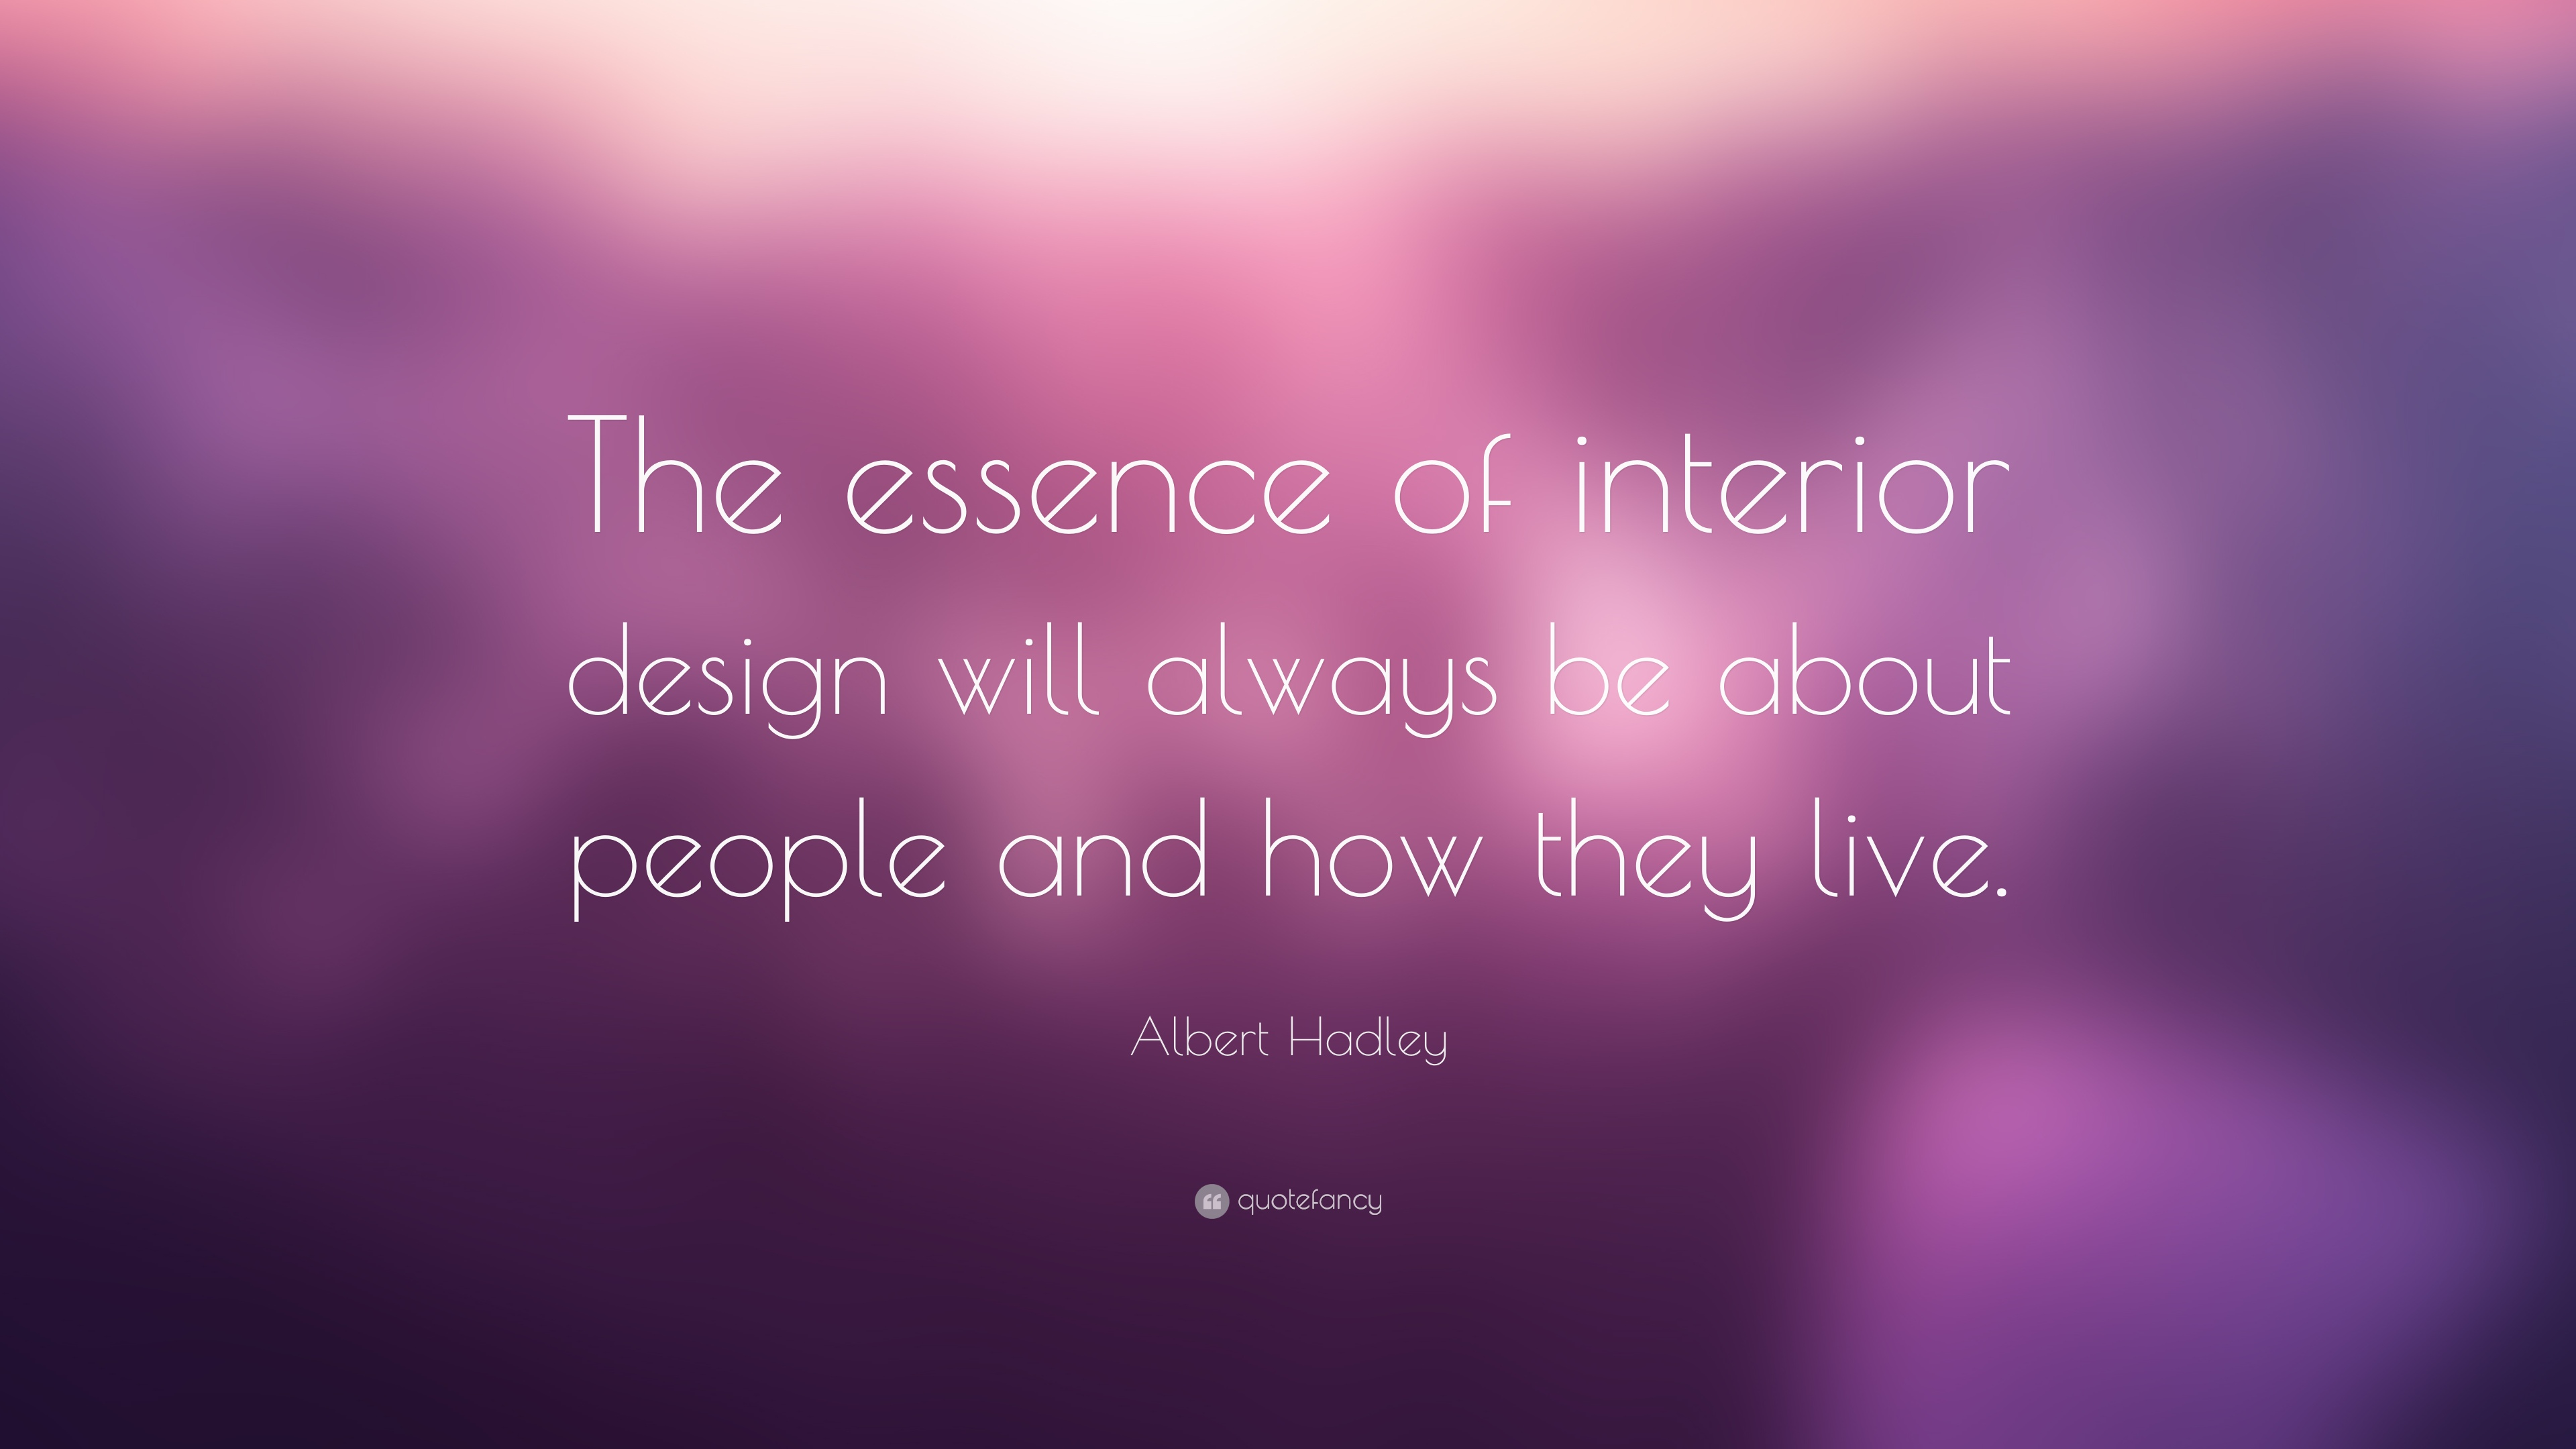 Albert Hadley Quote The Essence Of Interior Design Will Always Be About People And How They Live 7 Wallpapers Quotefancy